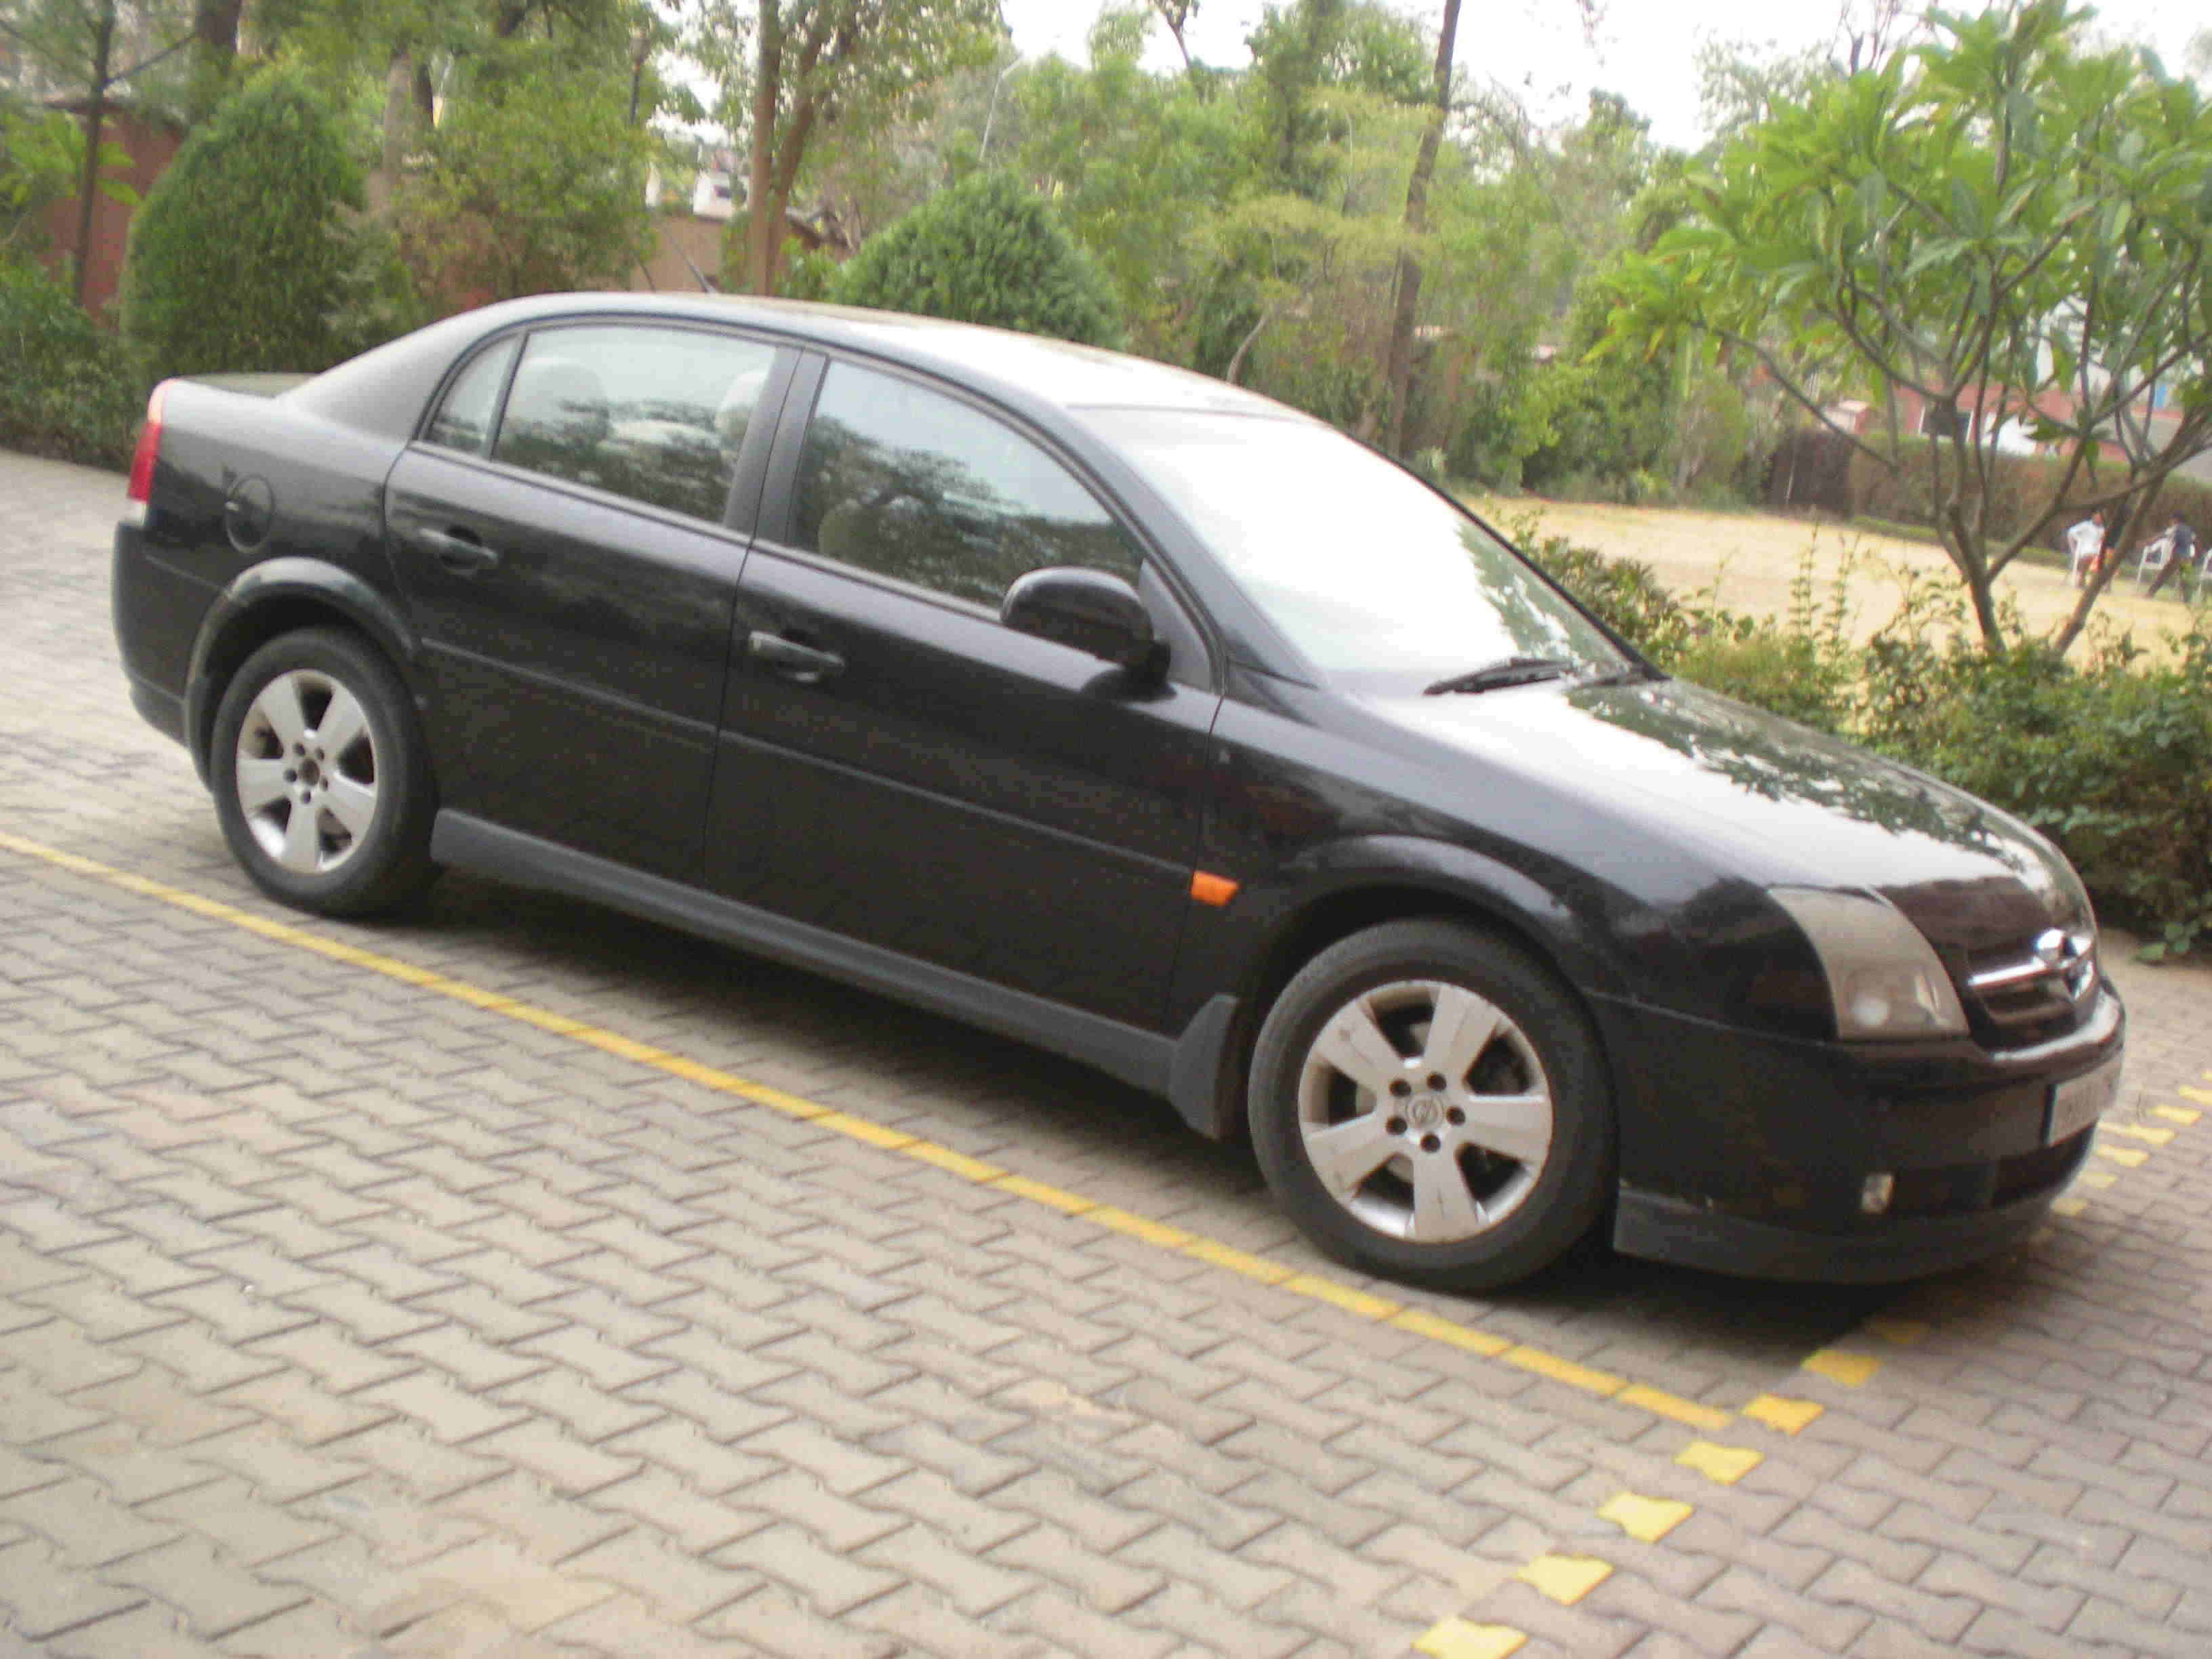 New Vauxhall Vectra Vauxhall India Latest Chevrolet Enjoy Mpv With Vauxhall